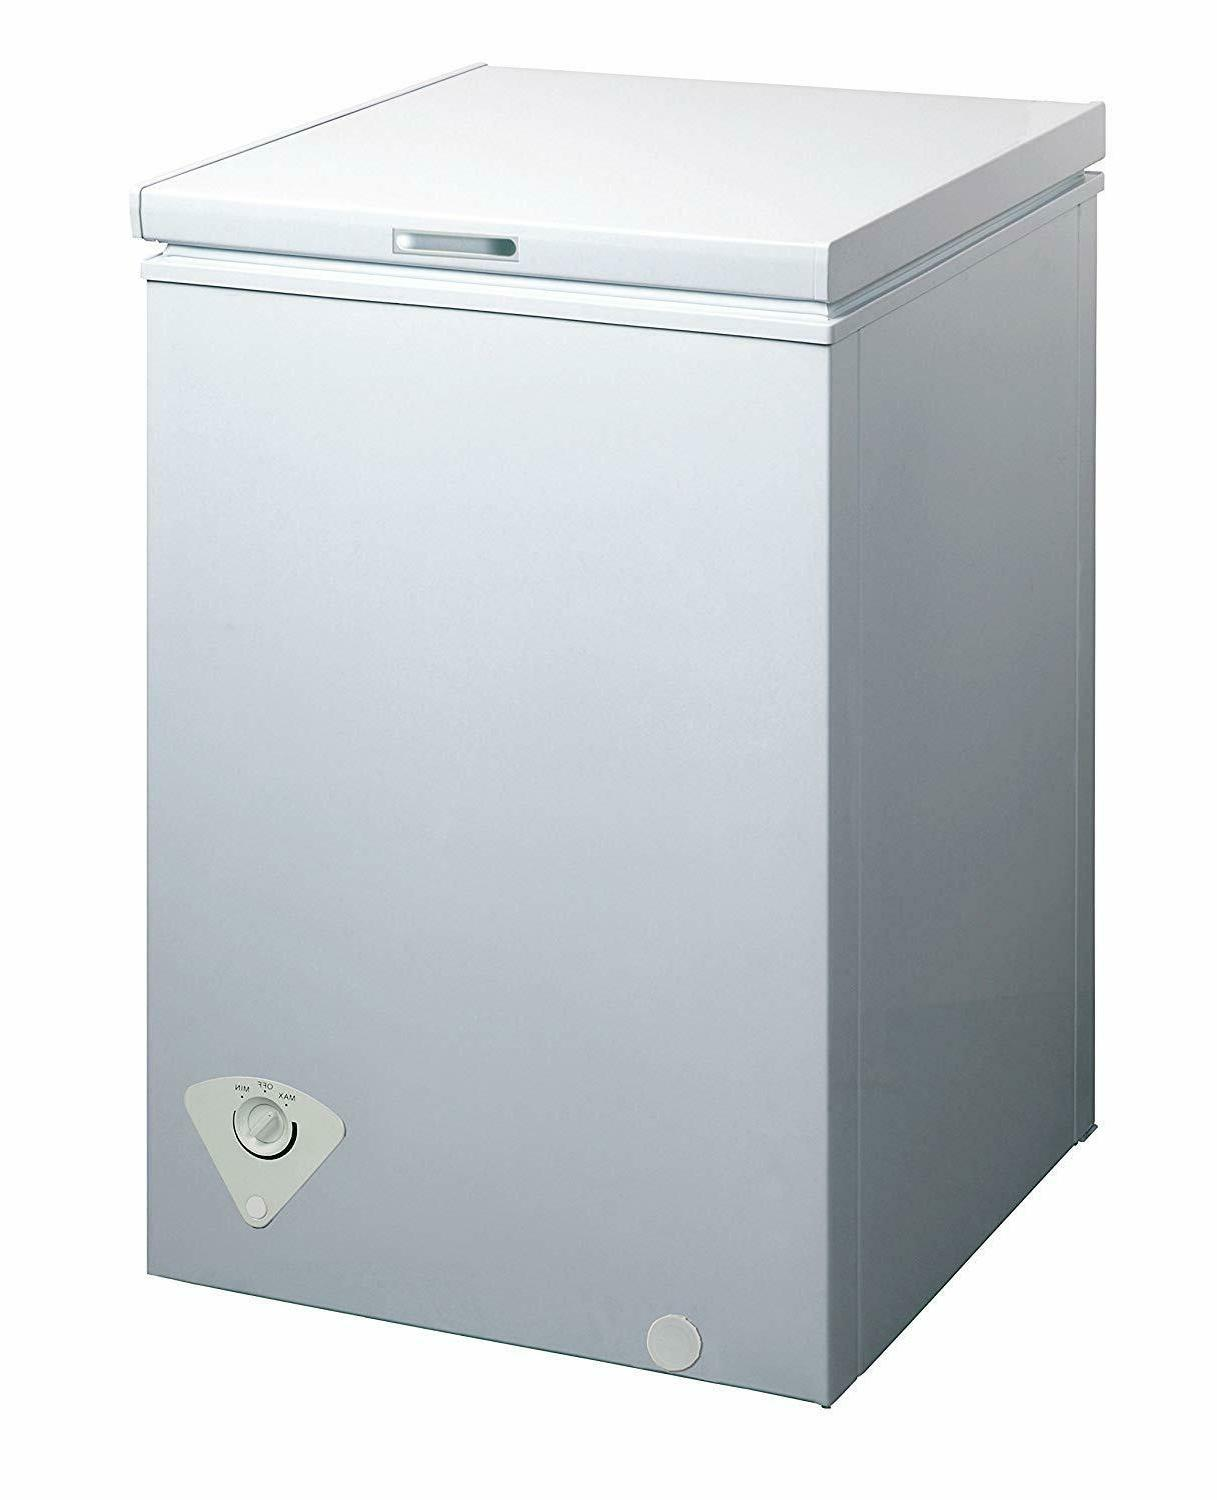 whs 129c1 stainless steel single door chest